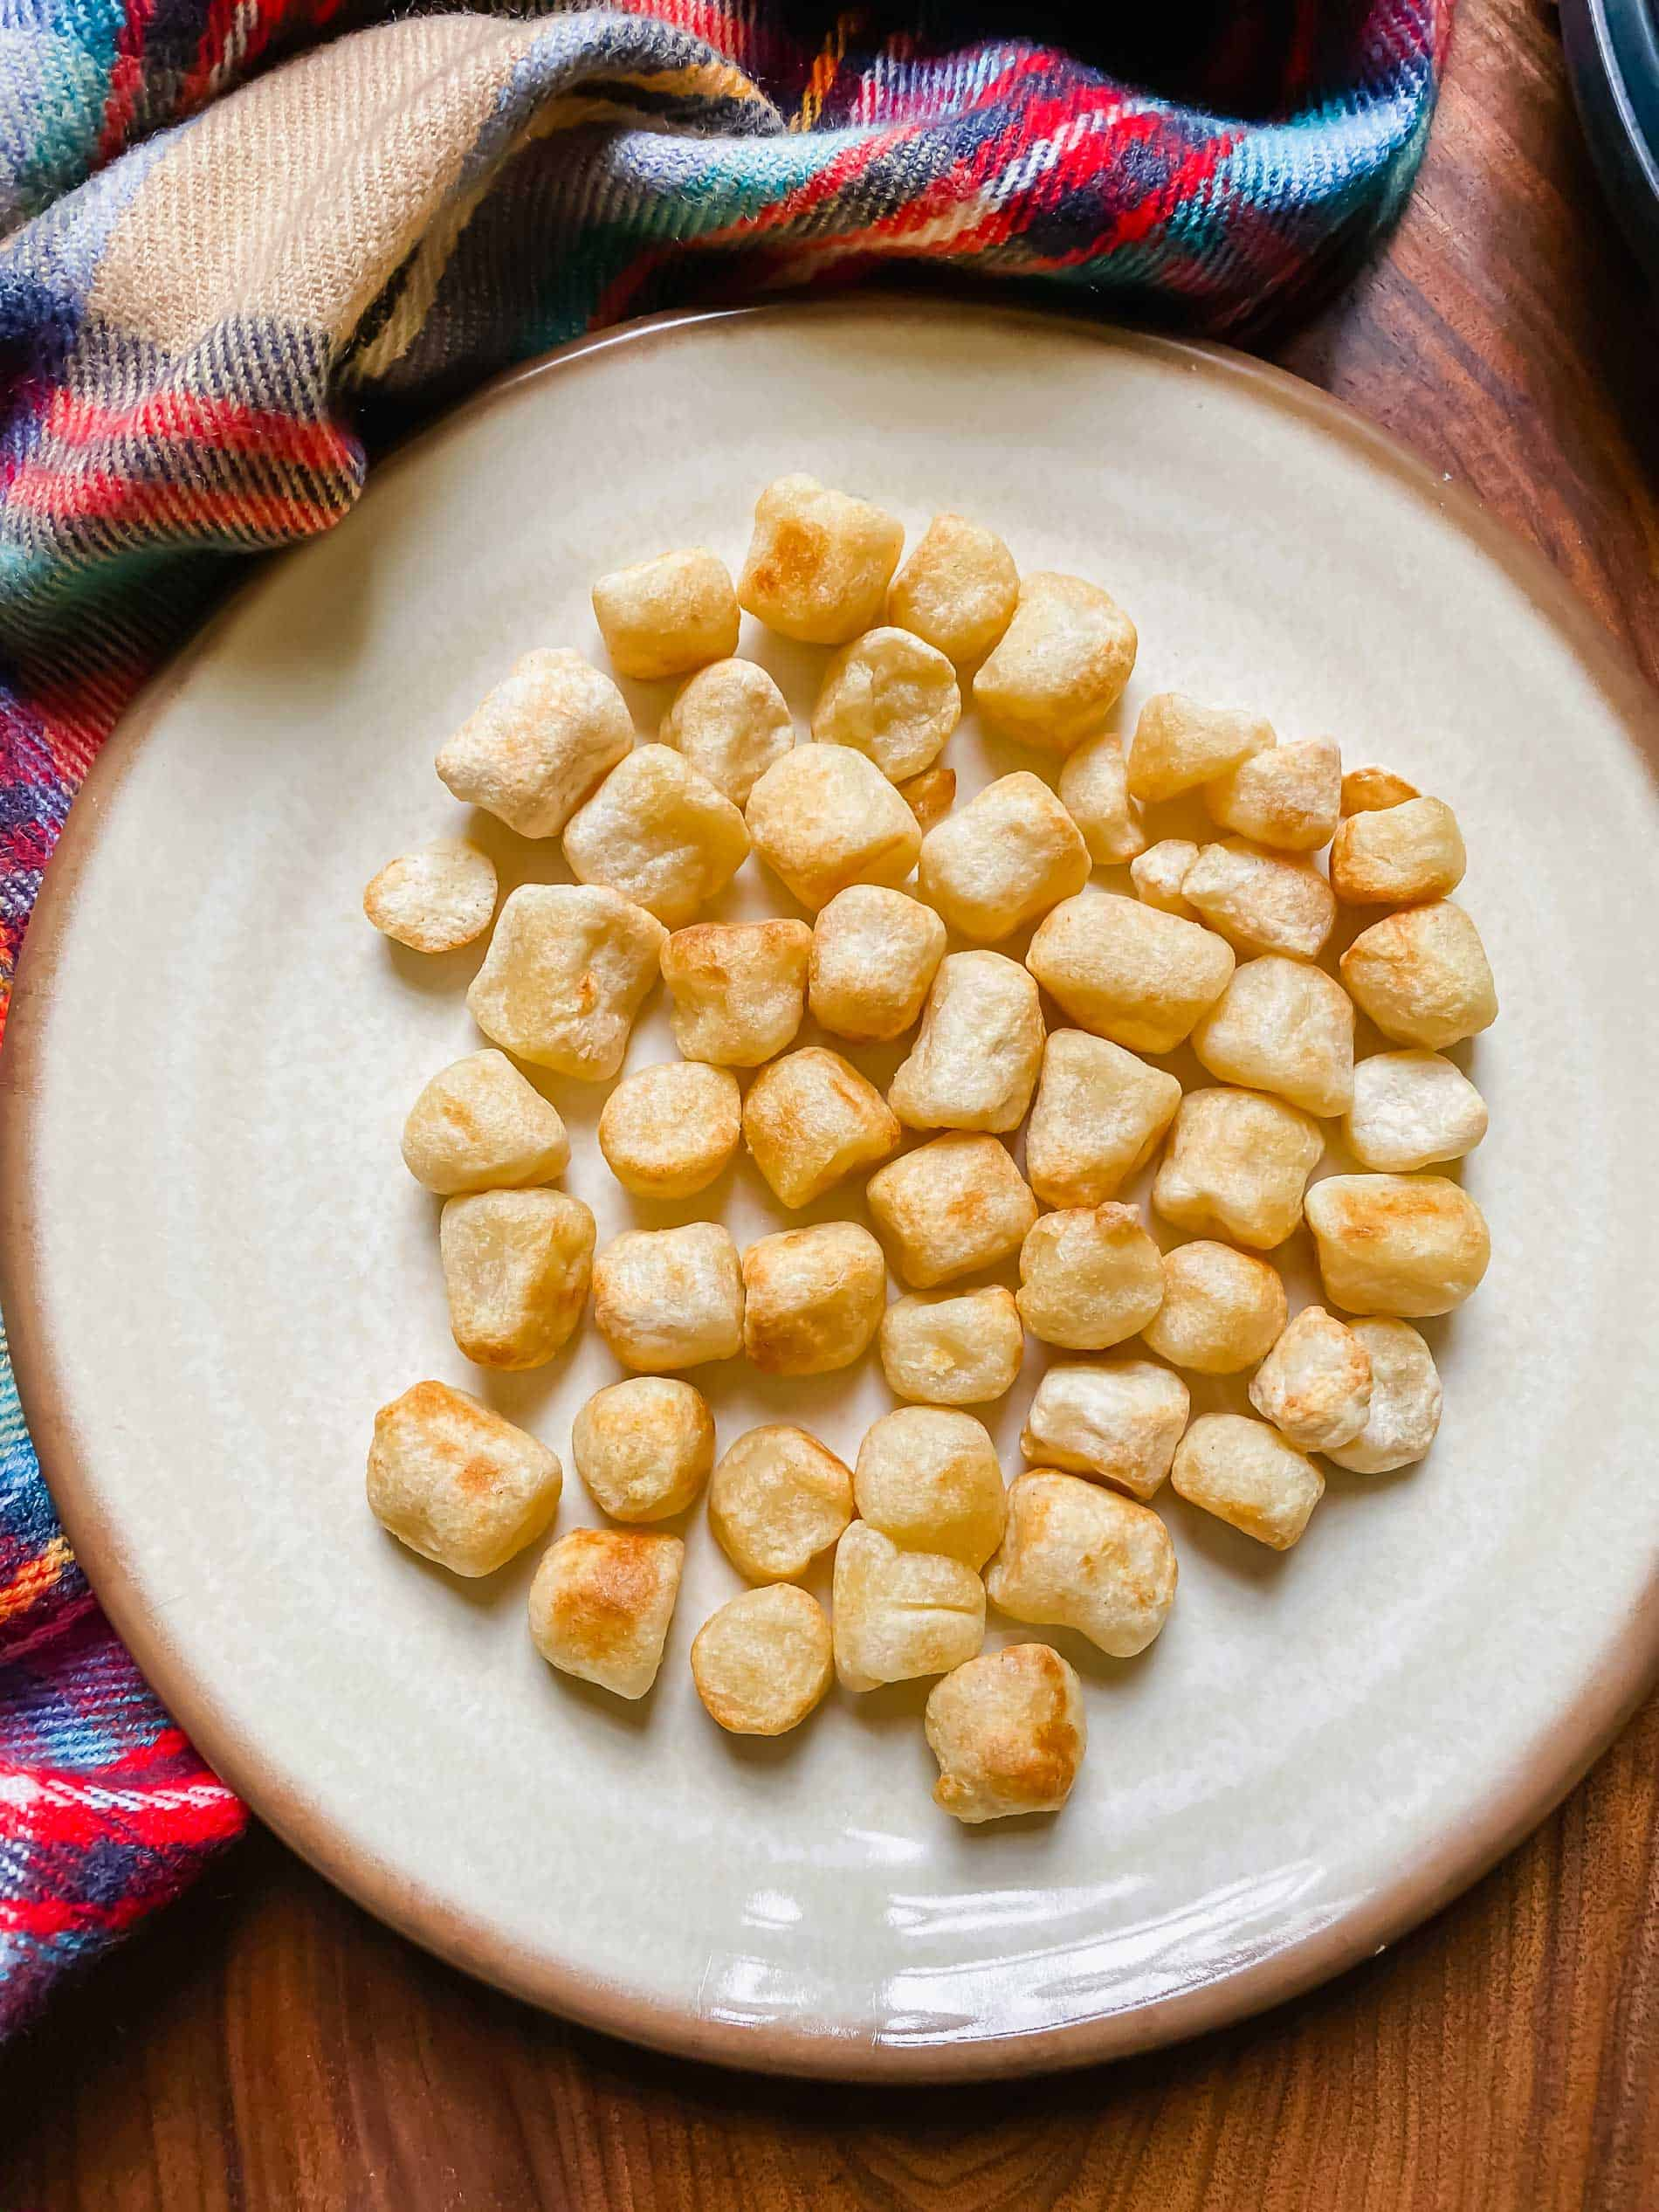 Air frying cauliflower gnocchi is a great way to get that crispy exterior and soft center!